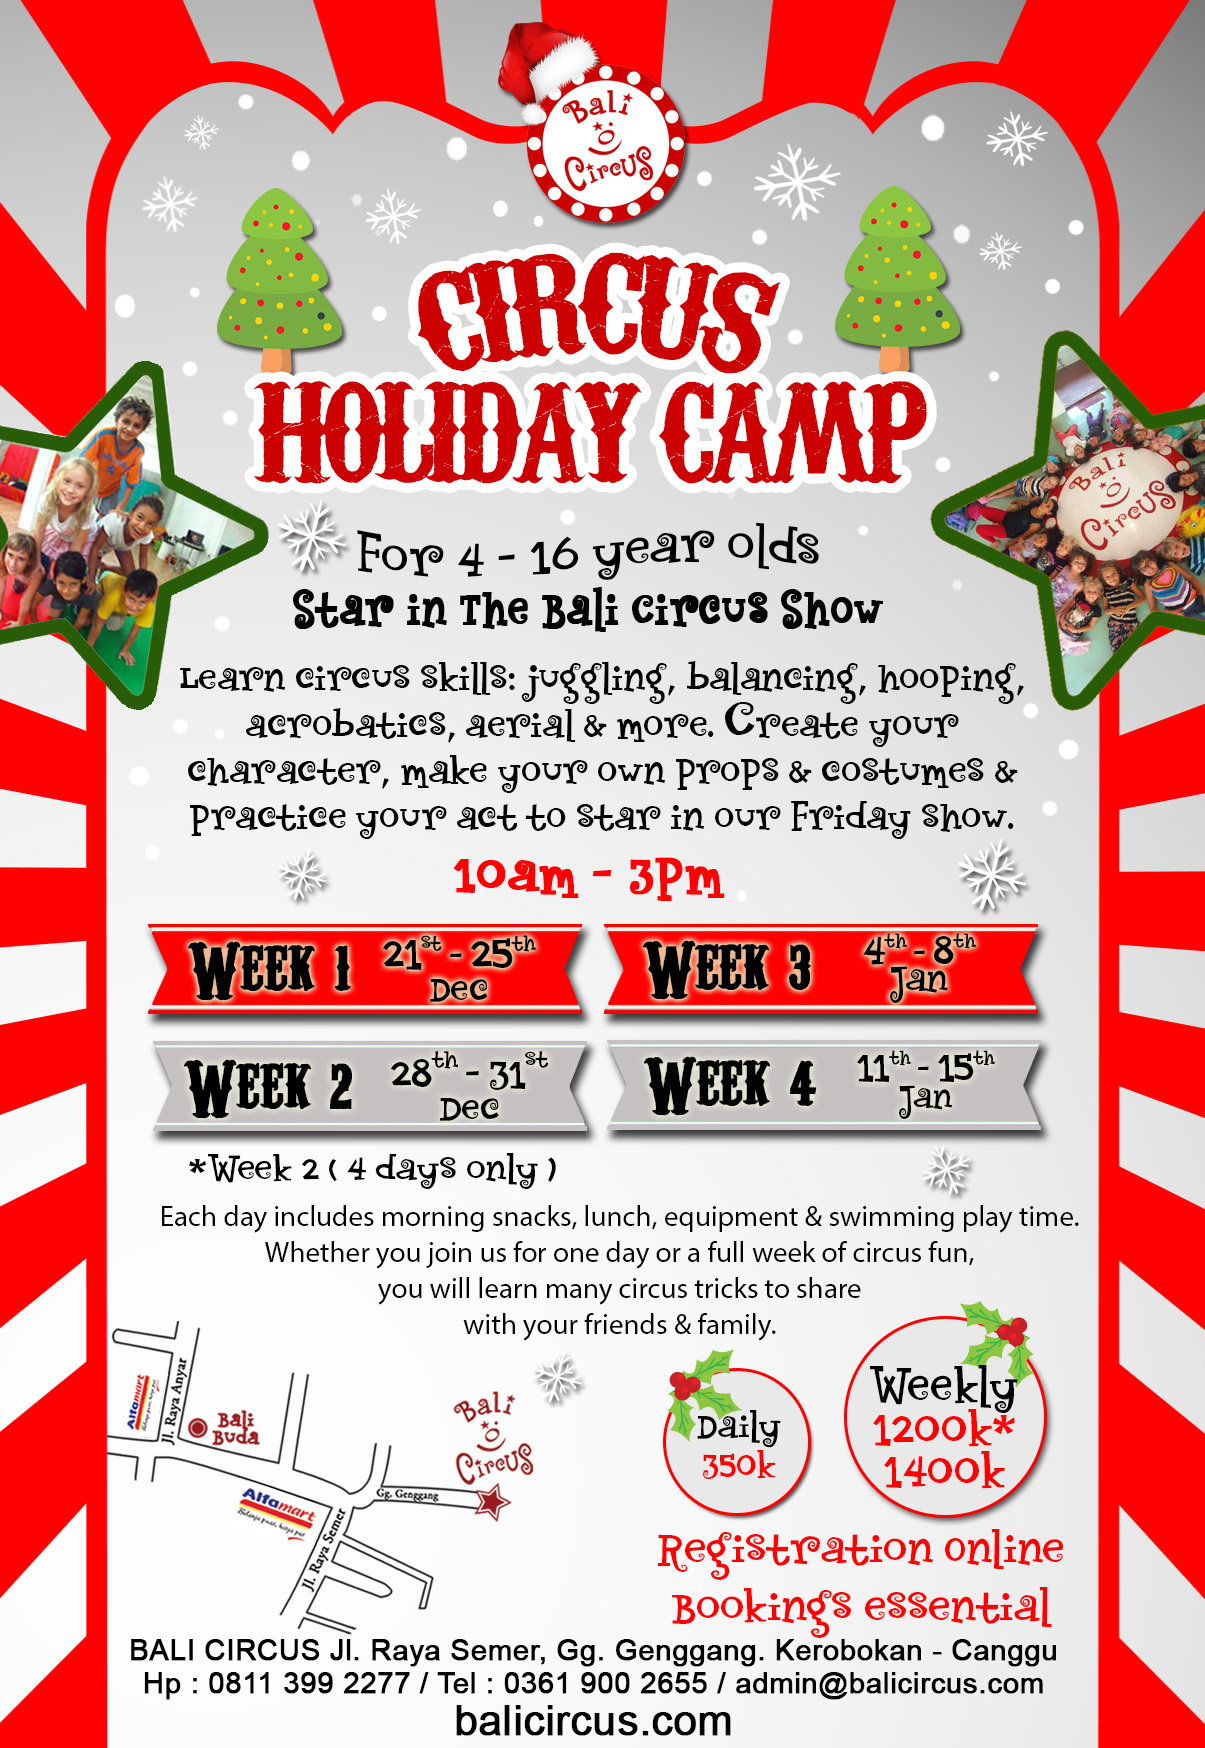 Circus Holiday Camp Dec 2015 - Jan 2016 (Upload)